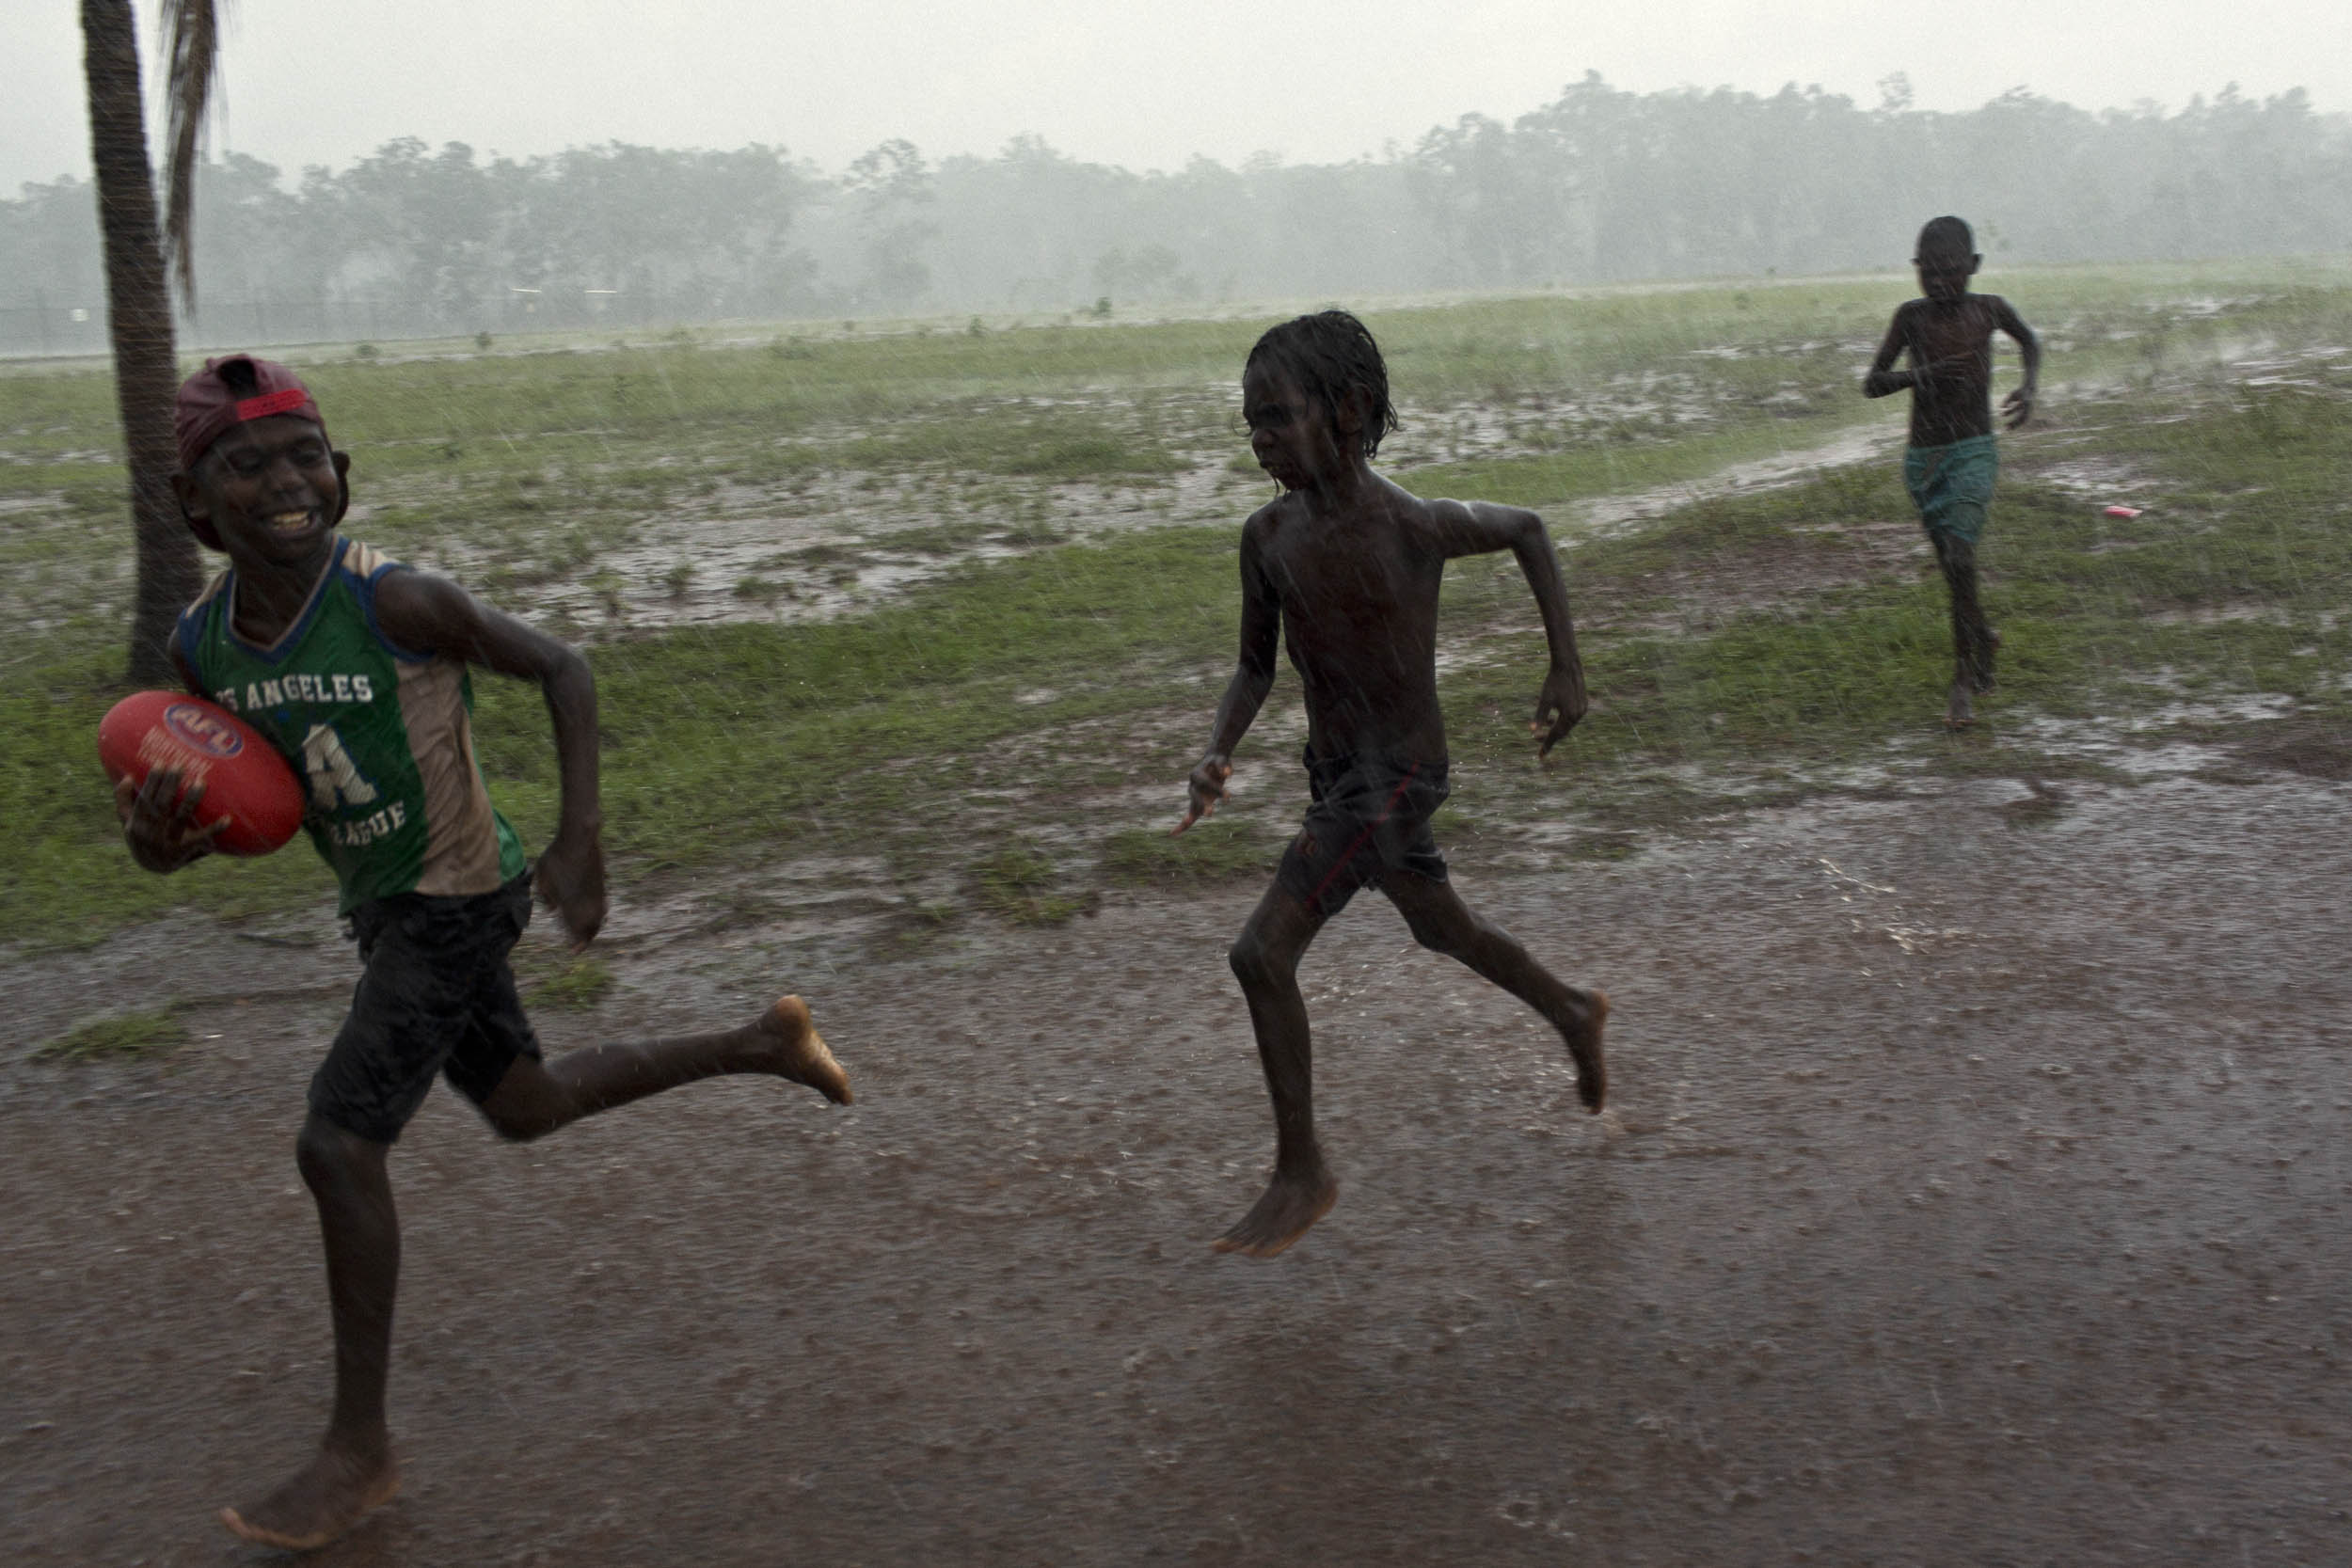 Boys play football in a rainstorm on Melville Island, Northern Territory.